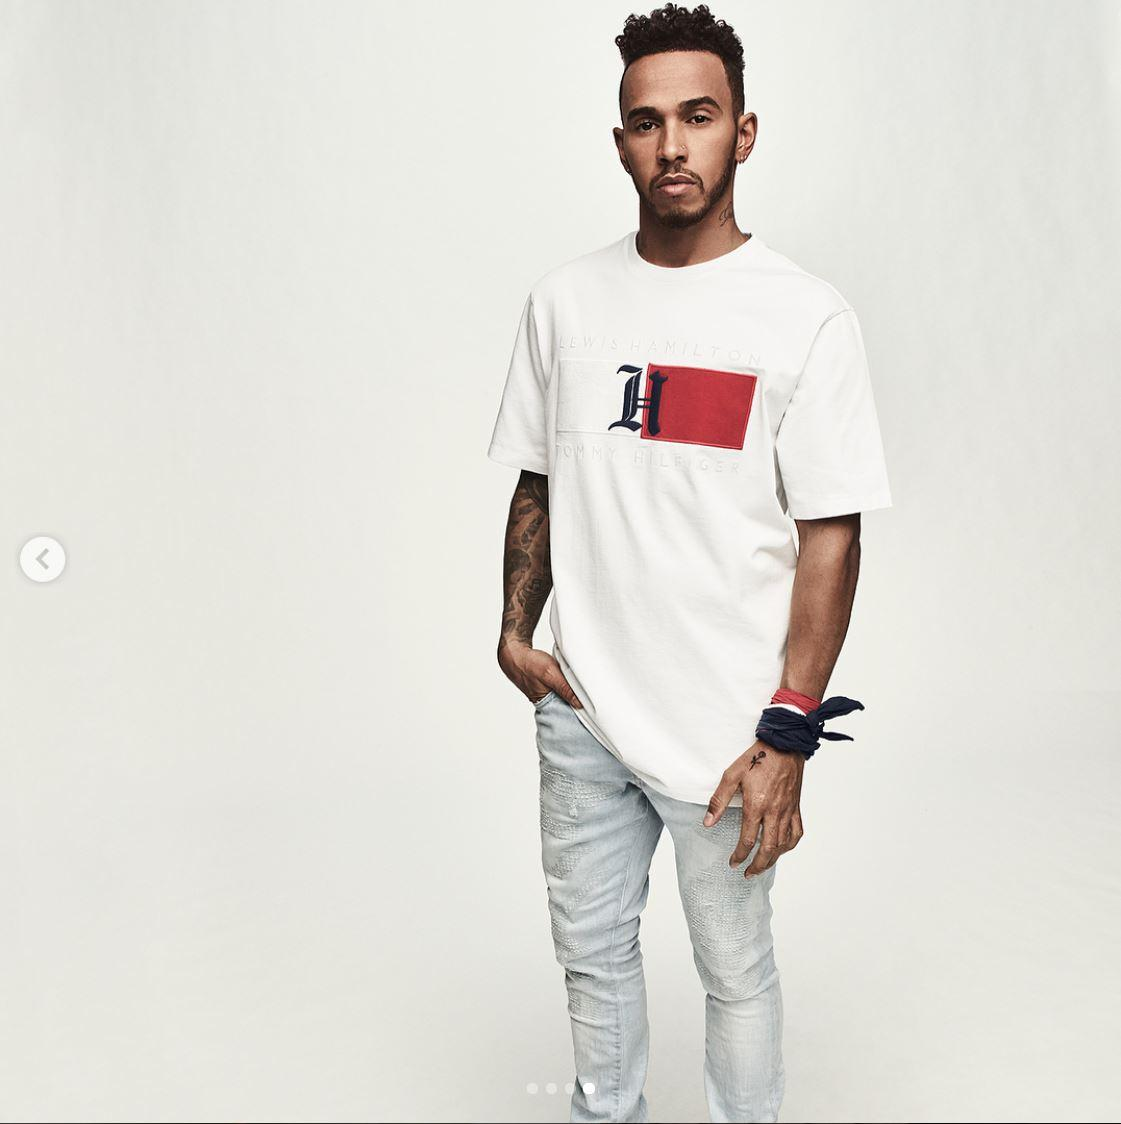 Lewis Hamilton claims there's been a good reaction from celebs to his fashion venture